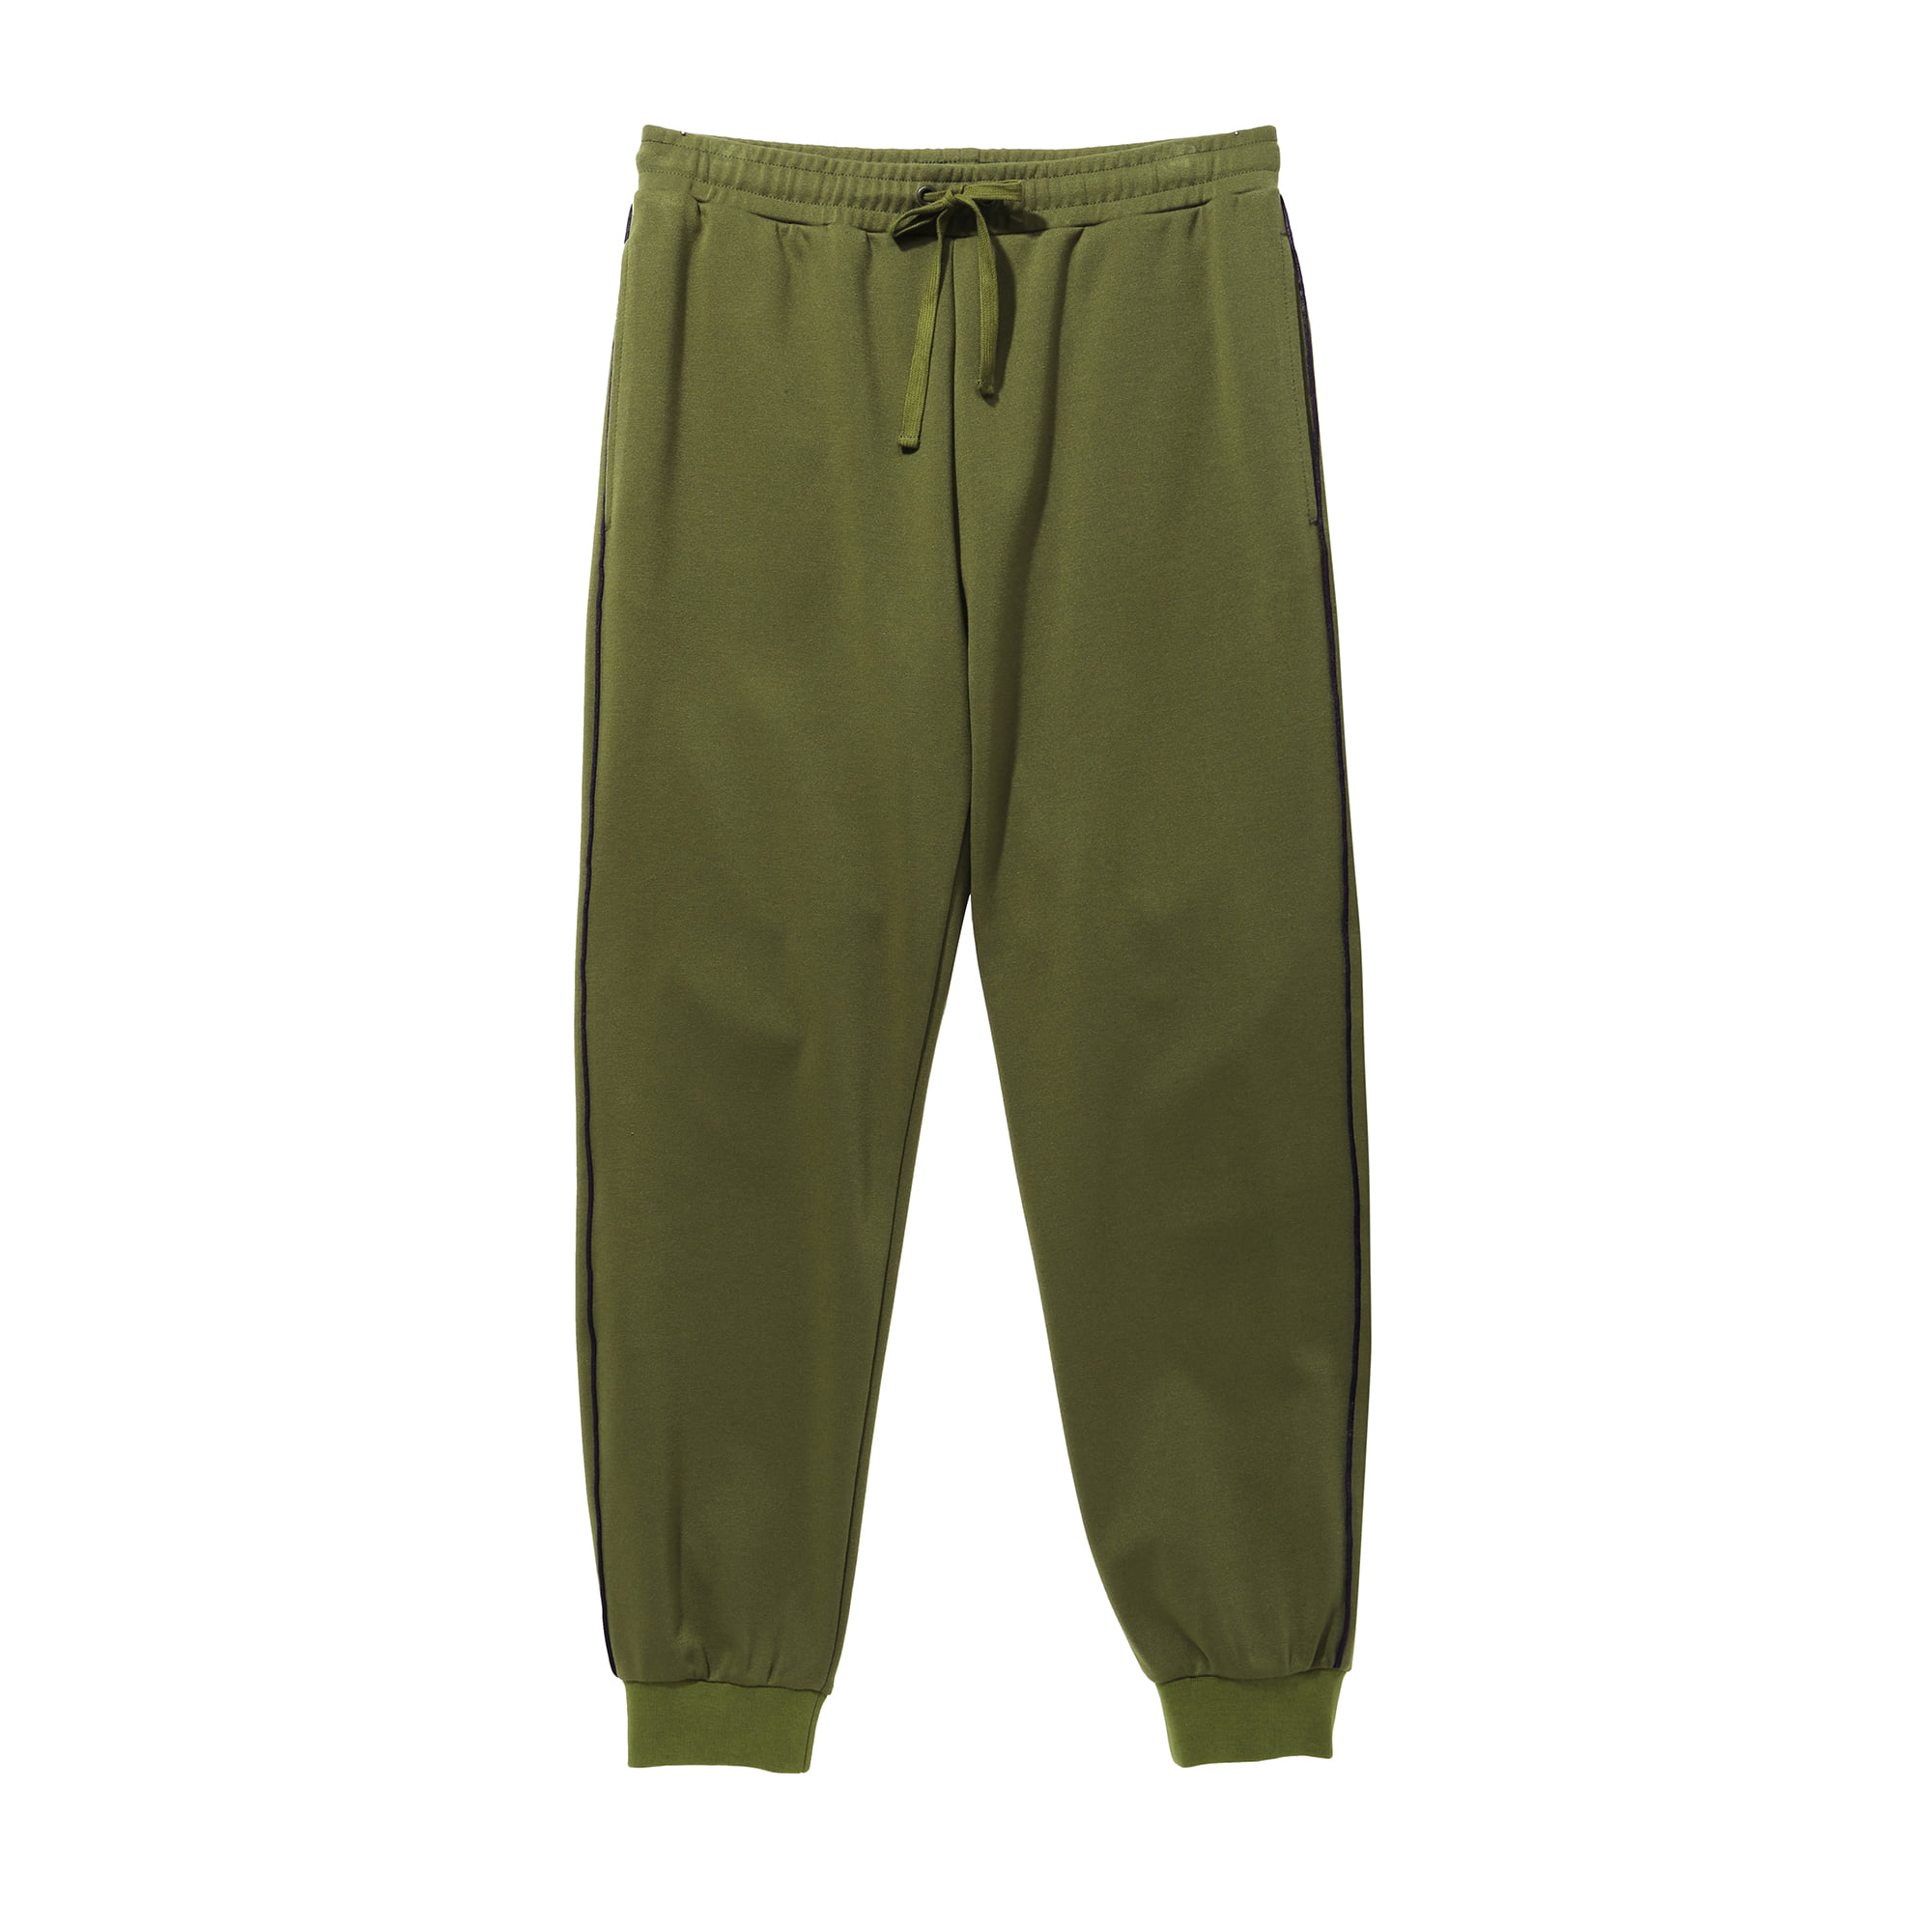 19FW MM Jogger Pants MYFBG4604